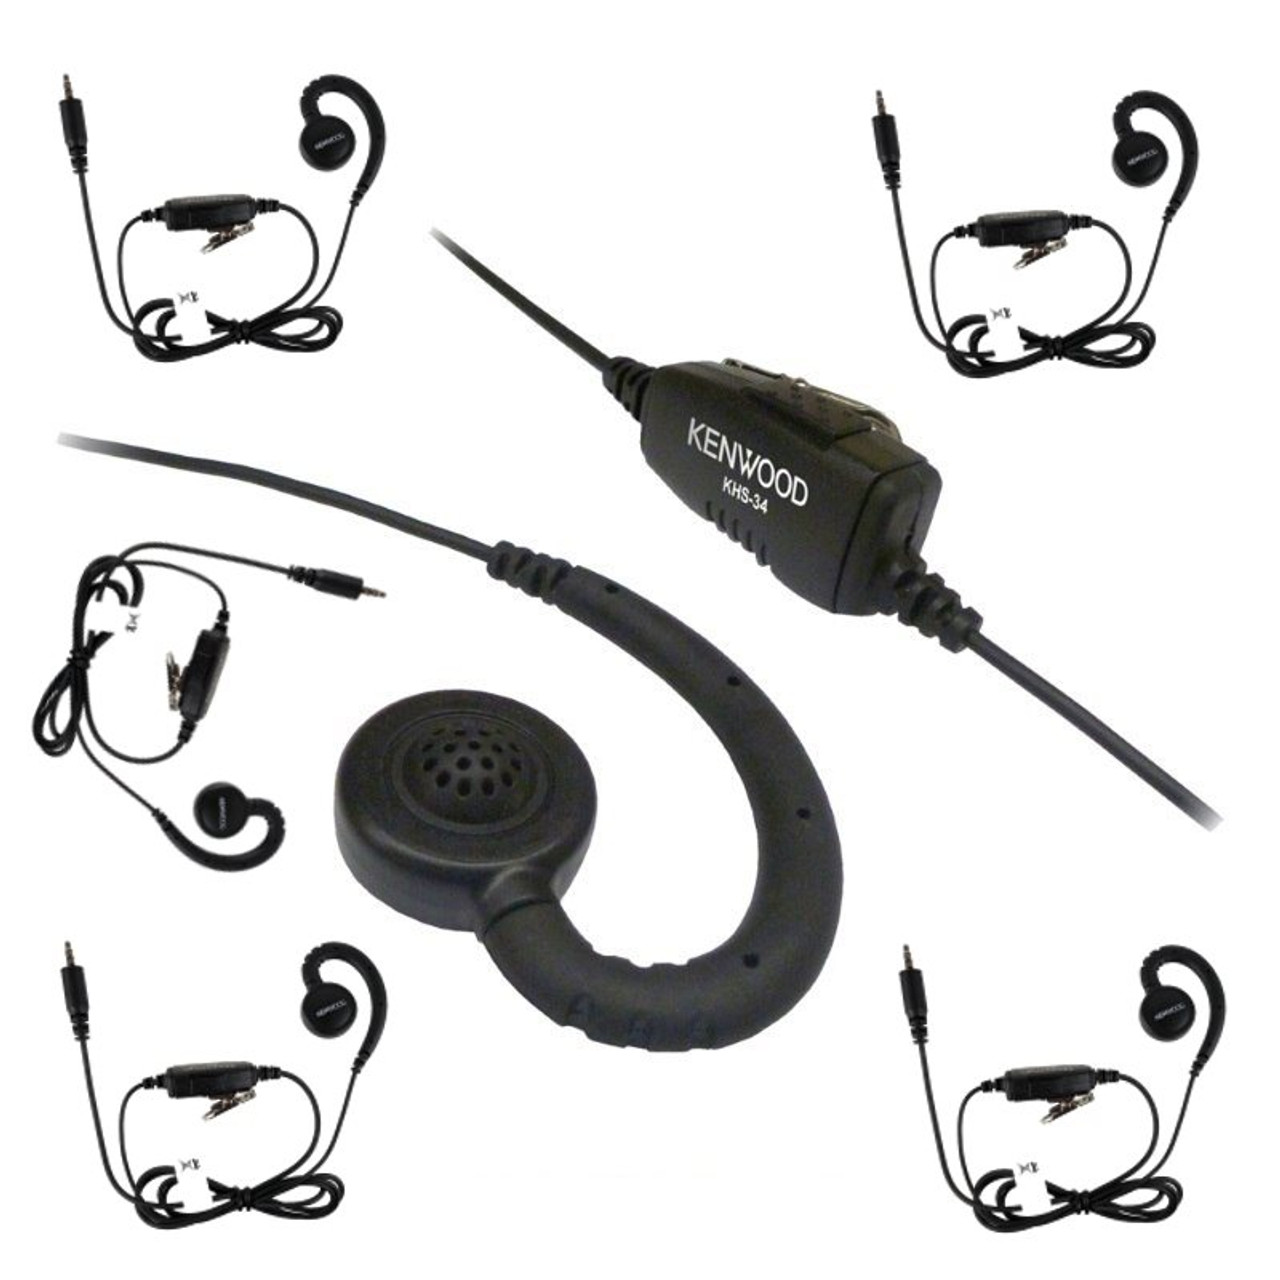 83b2d7e2a41 Get a Six Pack of the Kenwood KHS34 Earhook for PKT-23 Pocket-Sized  Business Two Way Radio UHF two-way radio. The KHS34 is a discrete C-Ring  earpiece with ...